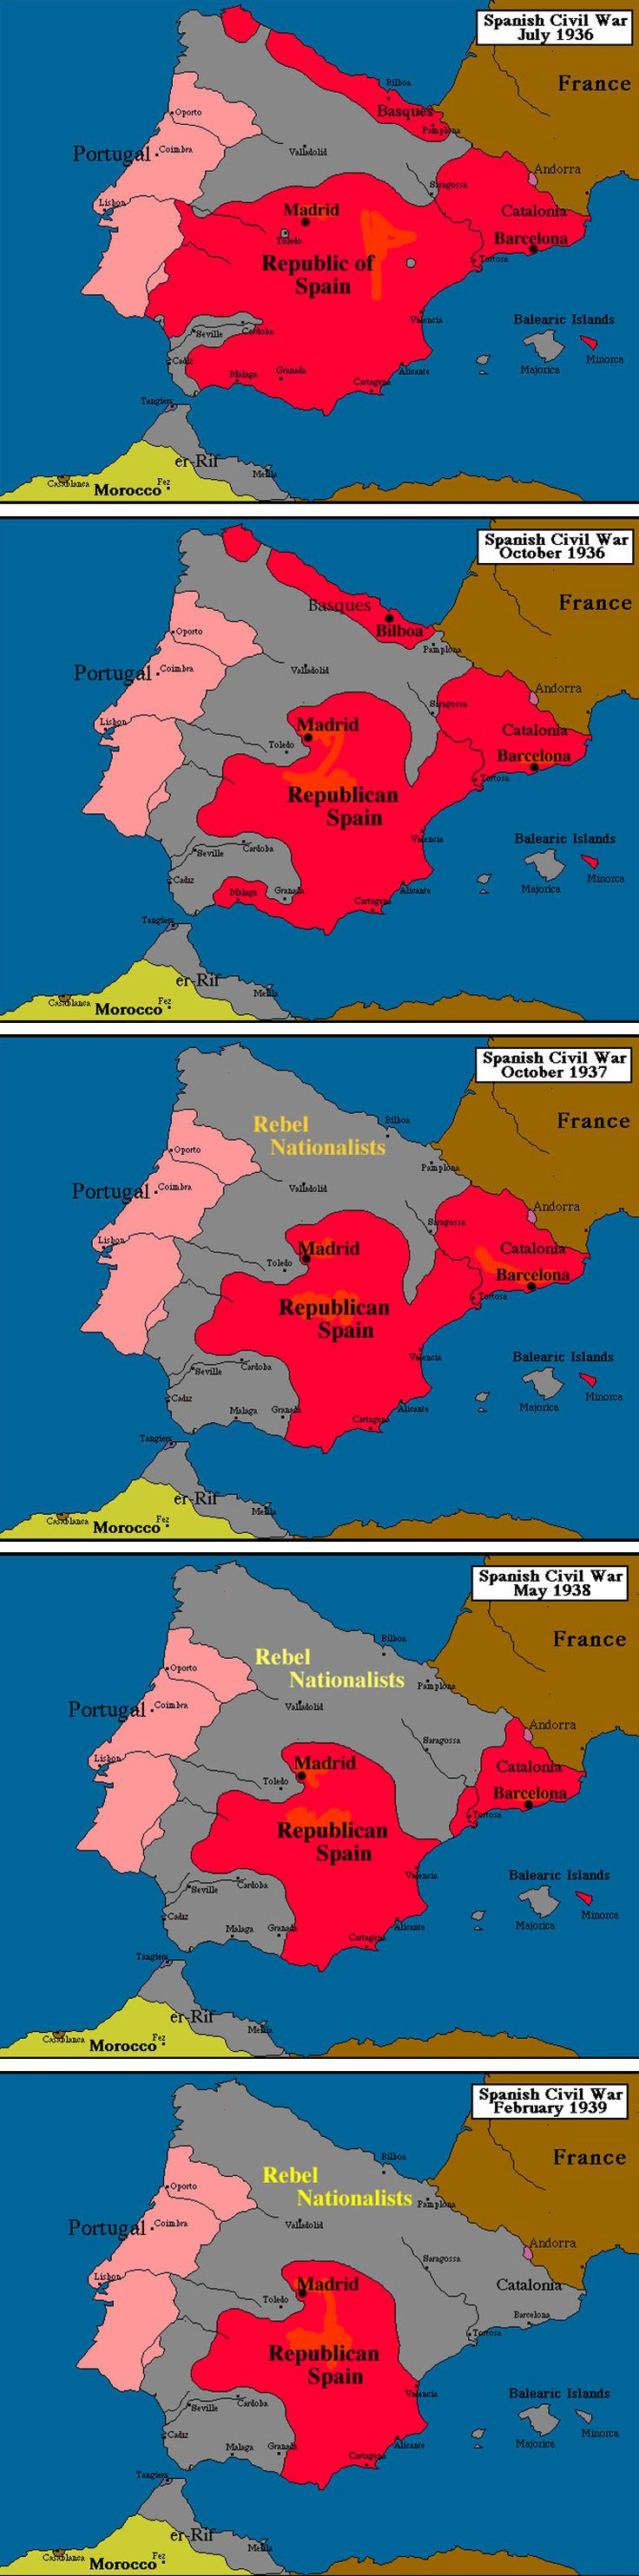 Spanish Civil War Maps 1936-1939